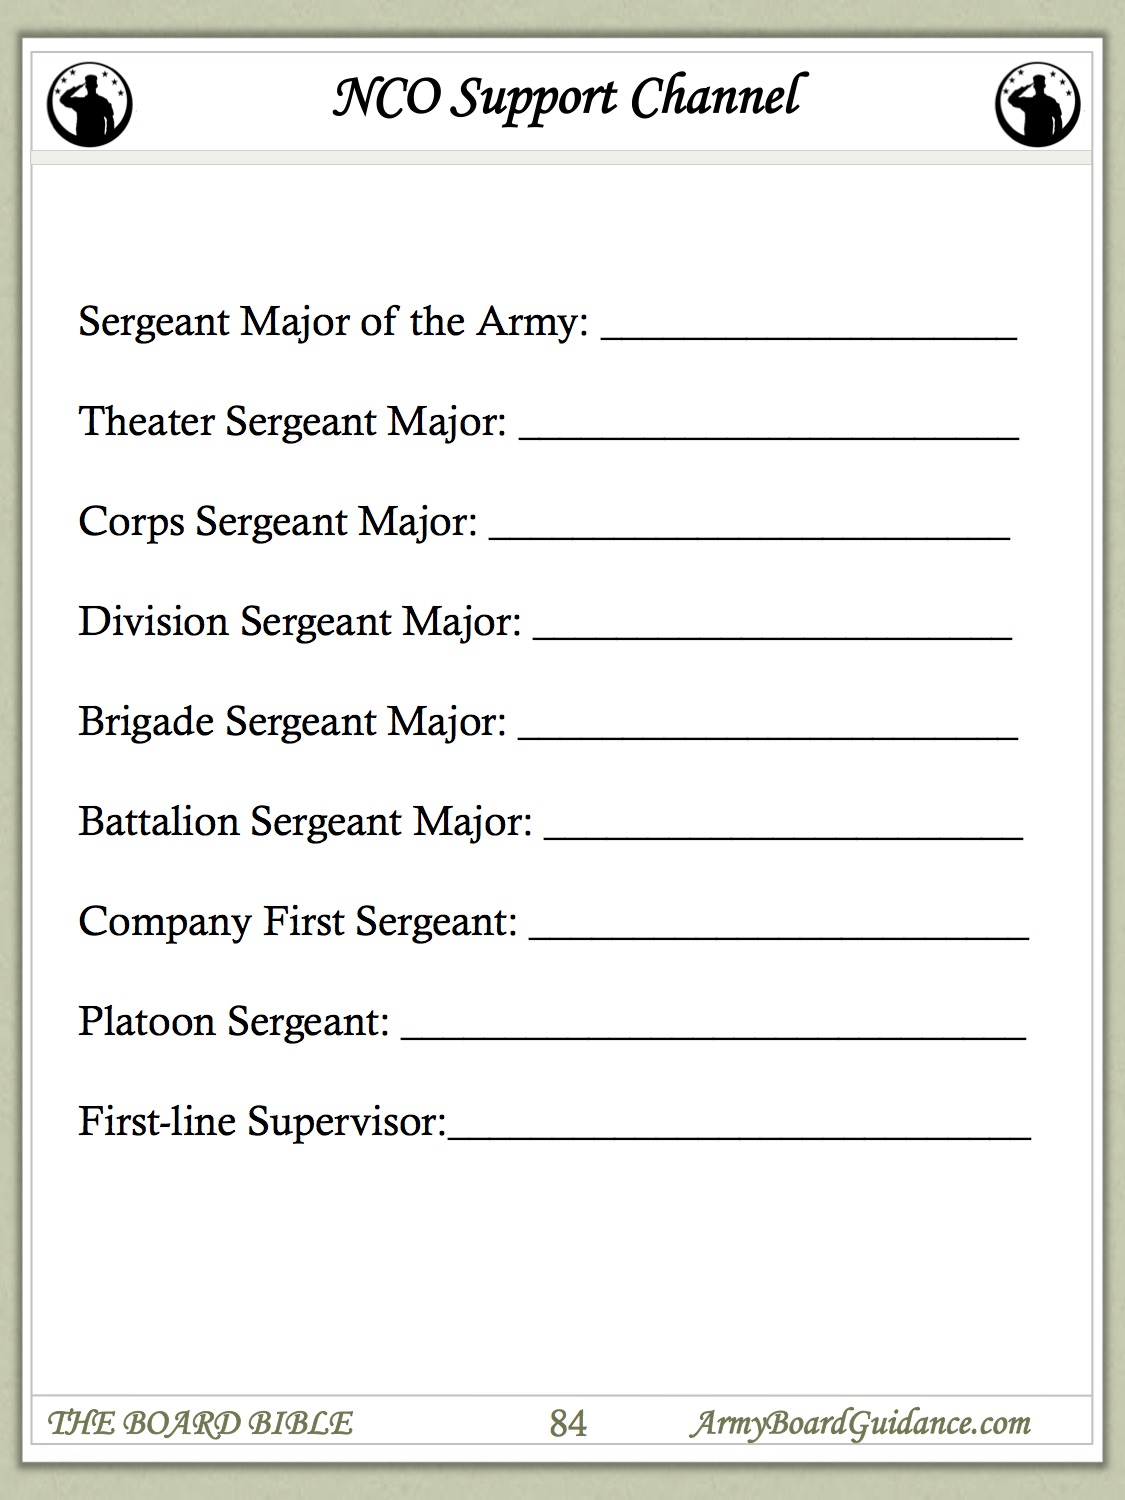 Nco Support Channel Worksheet